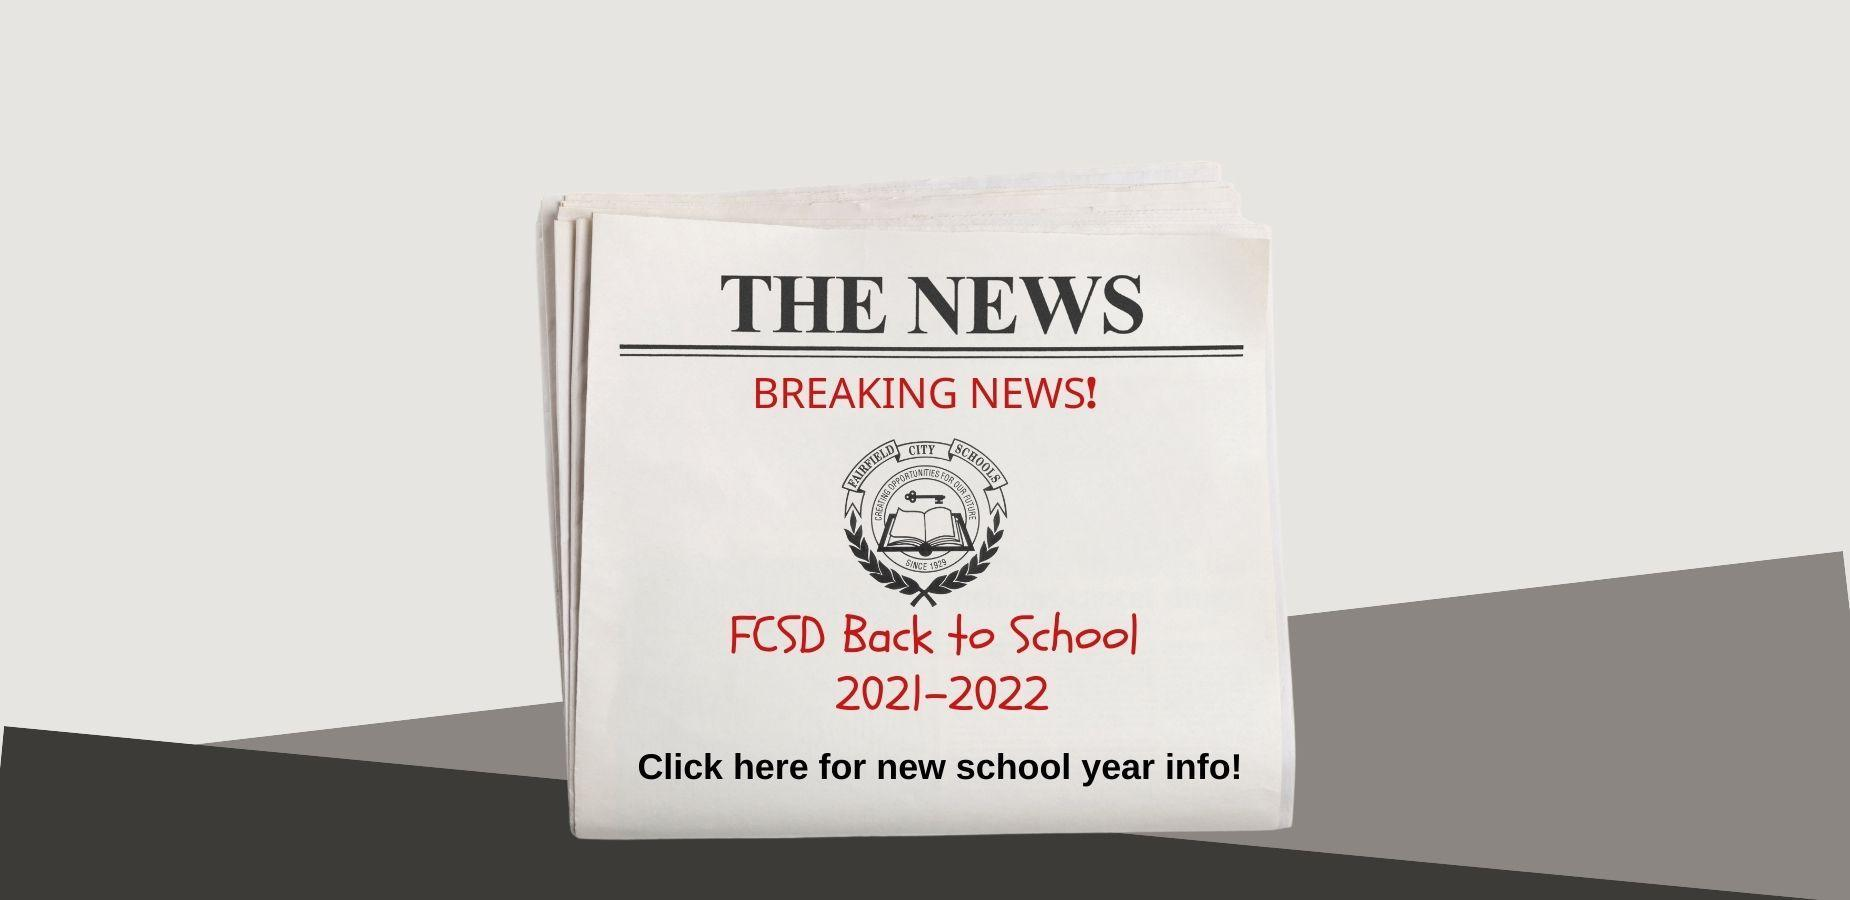 This is an image of a newspaper headline directing visitors to click to read more about 2021-2022 back to school news.